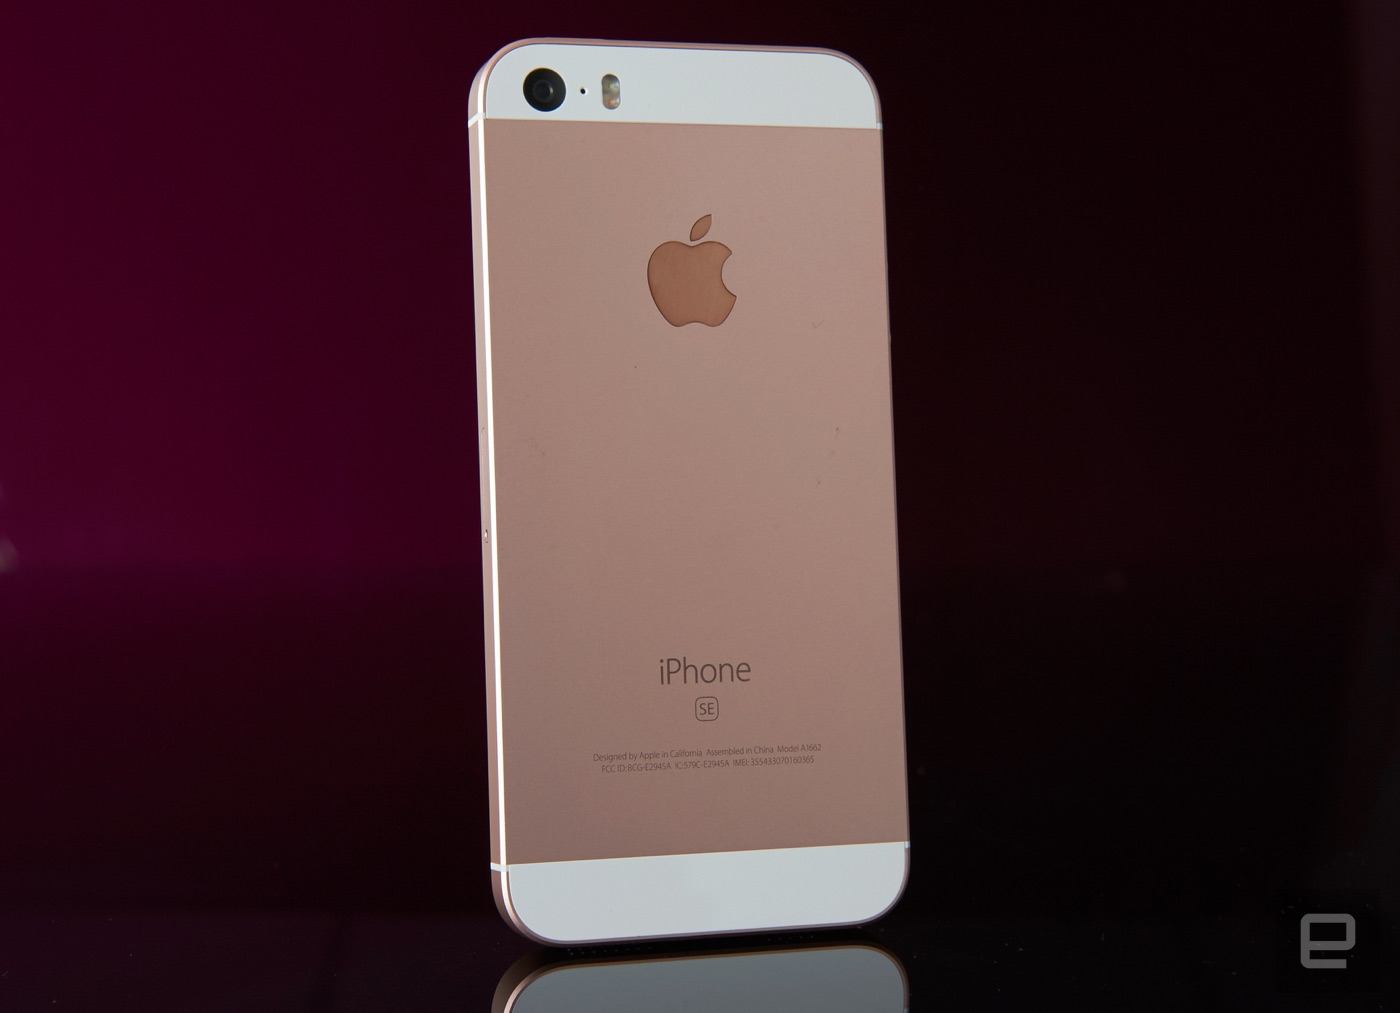 Apple iPhone SE review: A compelling blend of old and new